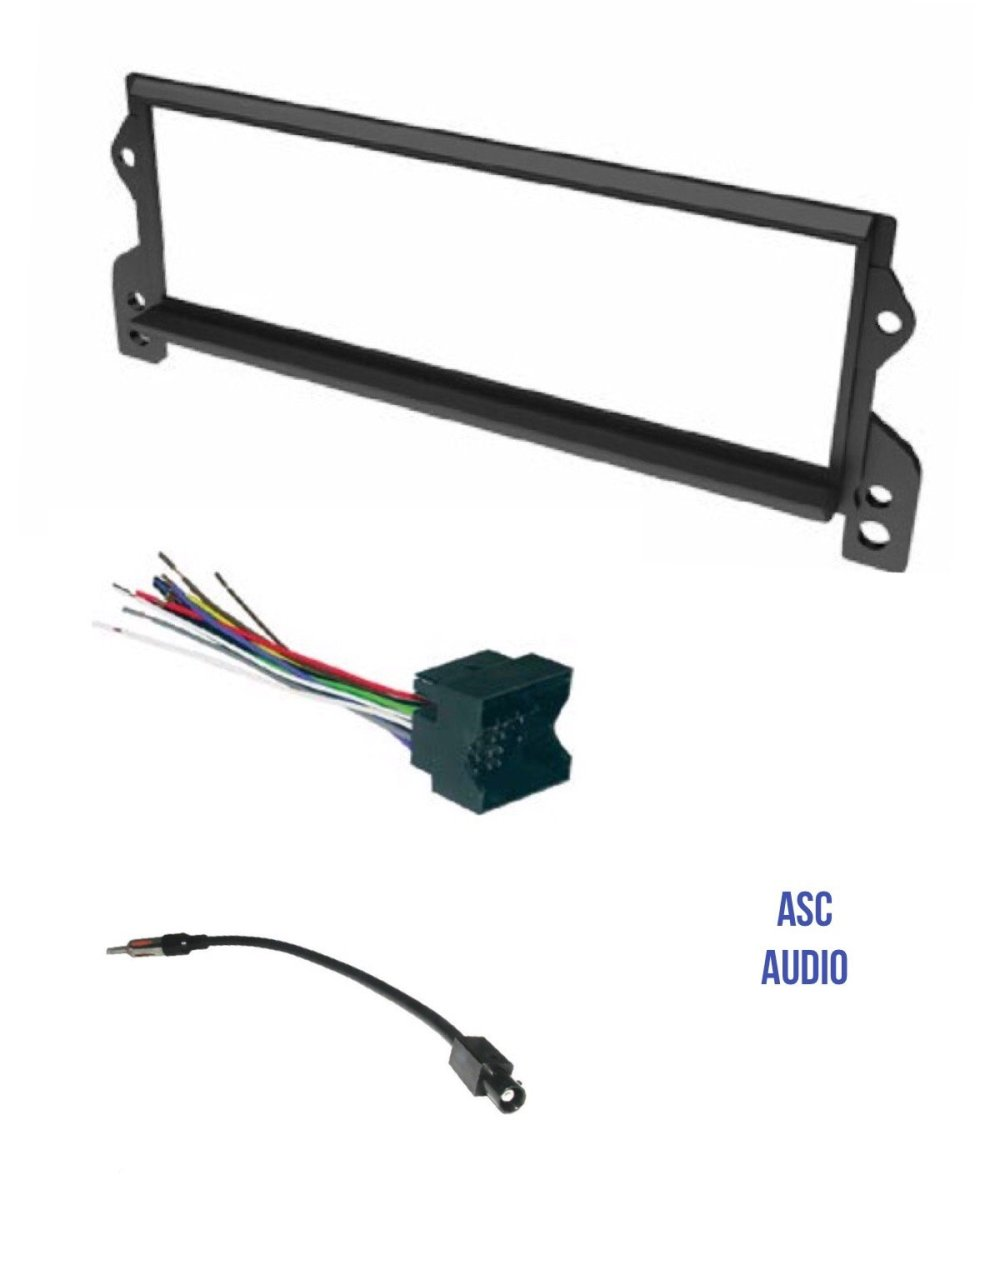 medium resolution of get quotations asc car stereo install dash kit wire harness and antenna adapter for installing a